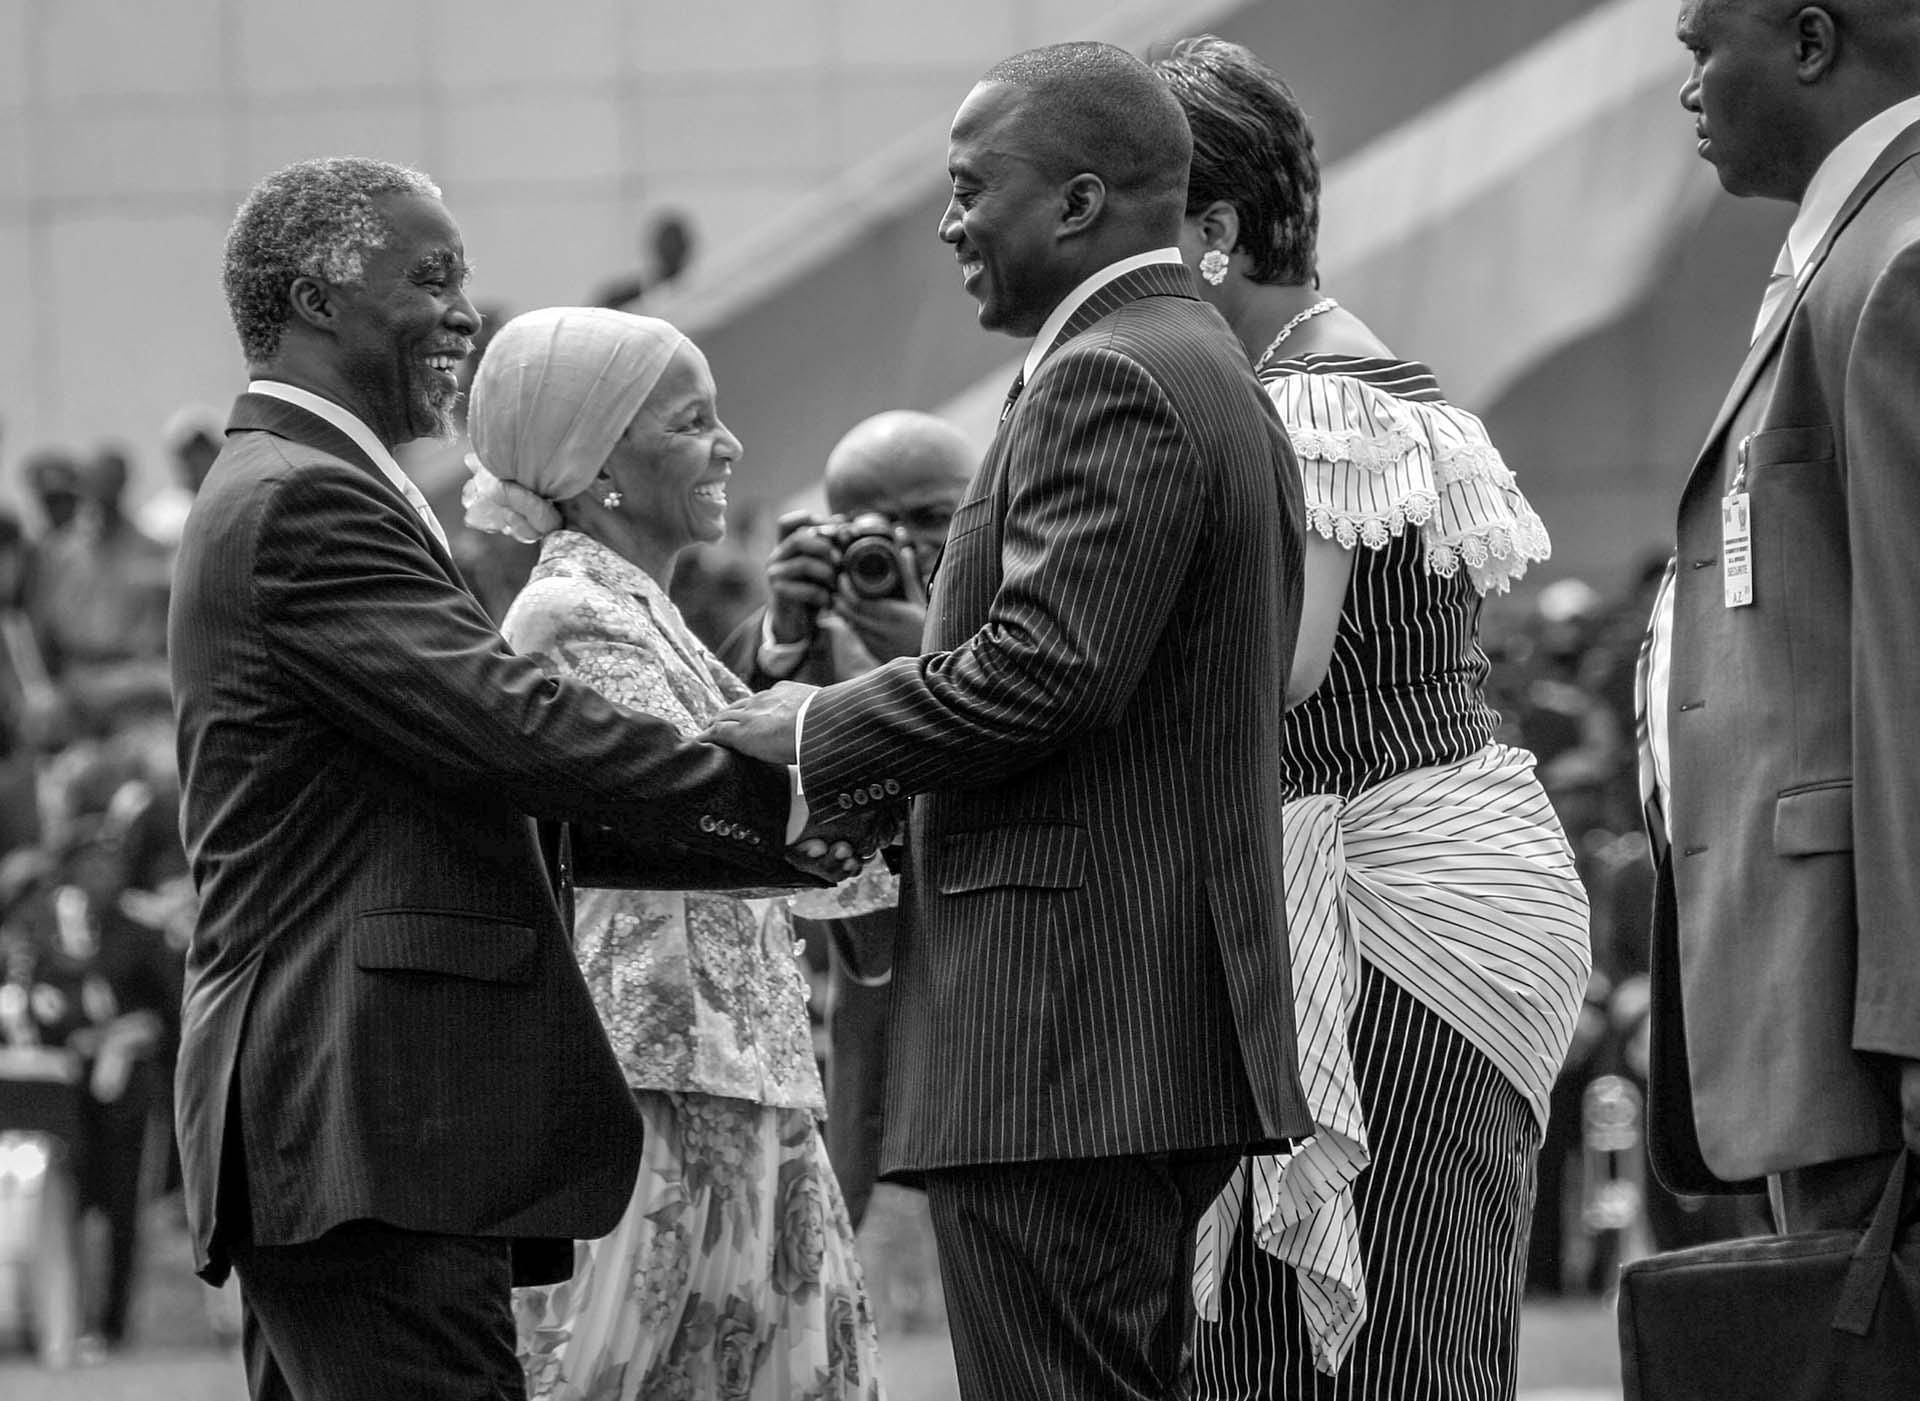 Joseph Kabila, a newly elected president of the Democratic Republic of Congo, is congratulated by Thabo Mbeki, South African president, during the inauguration ceremony in the capital Kinshasa.